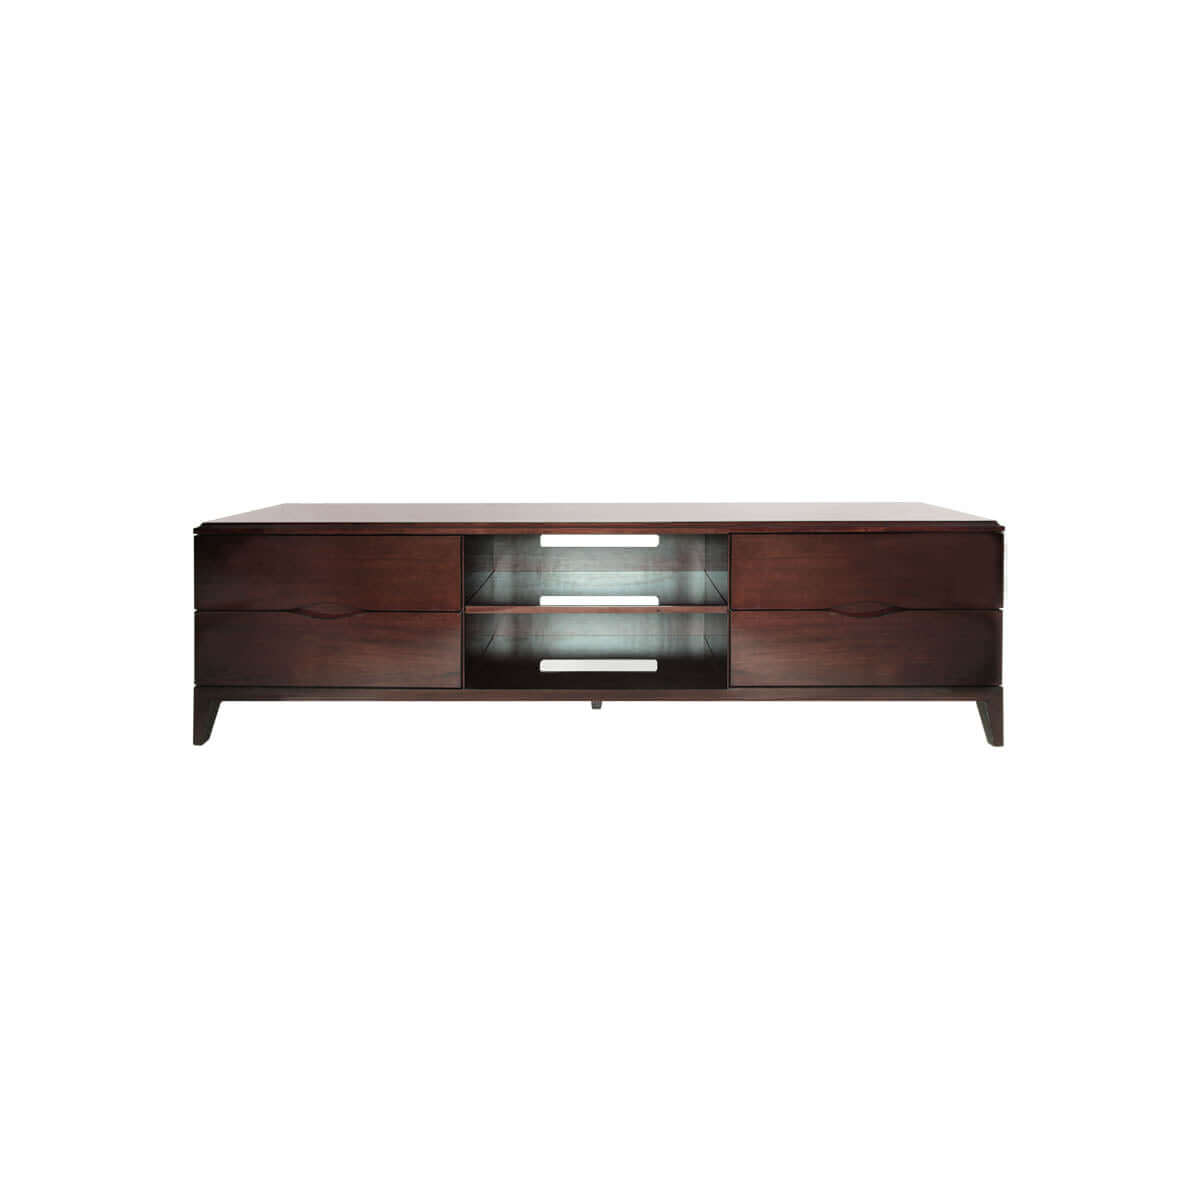 simple yet stylish newbury tv bench